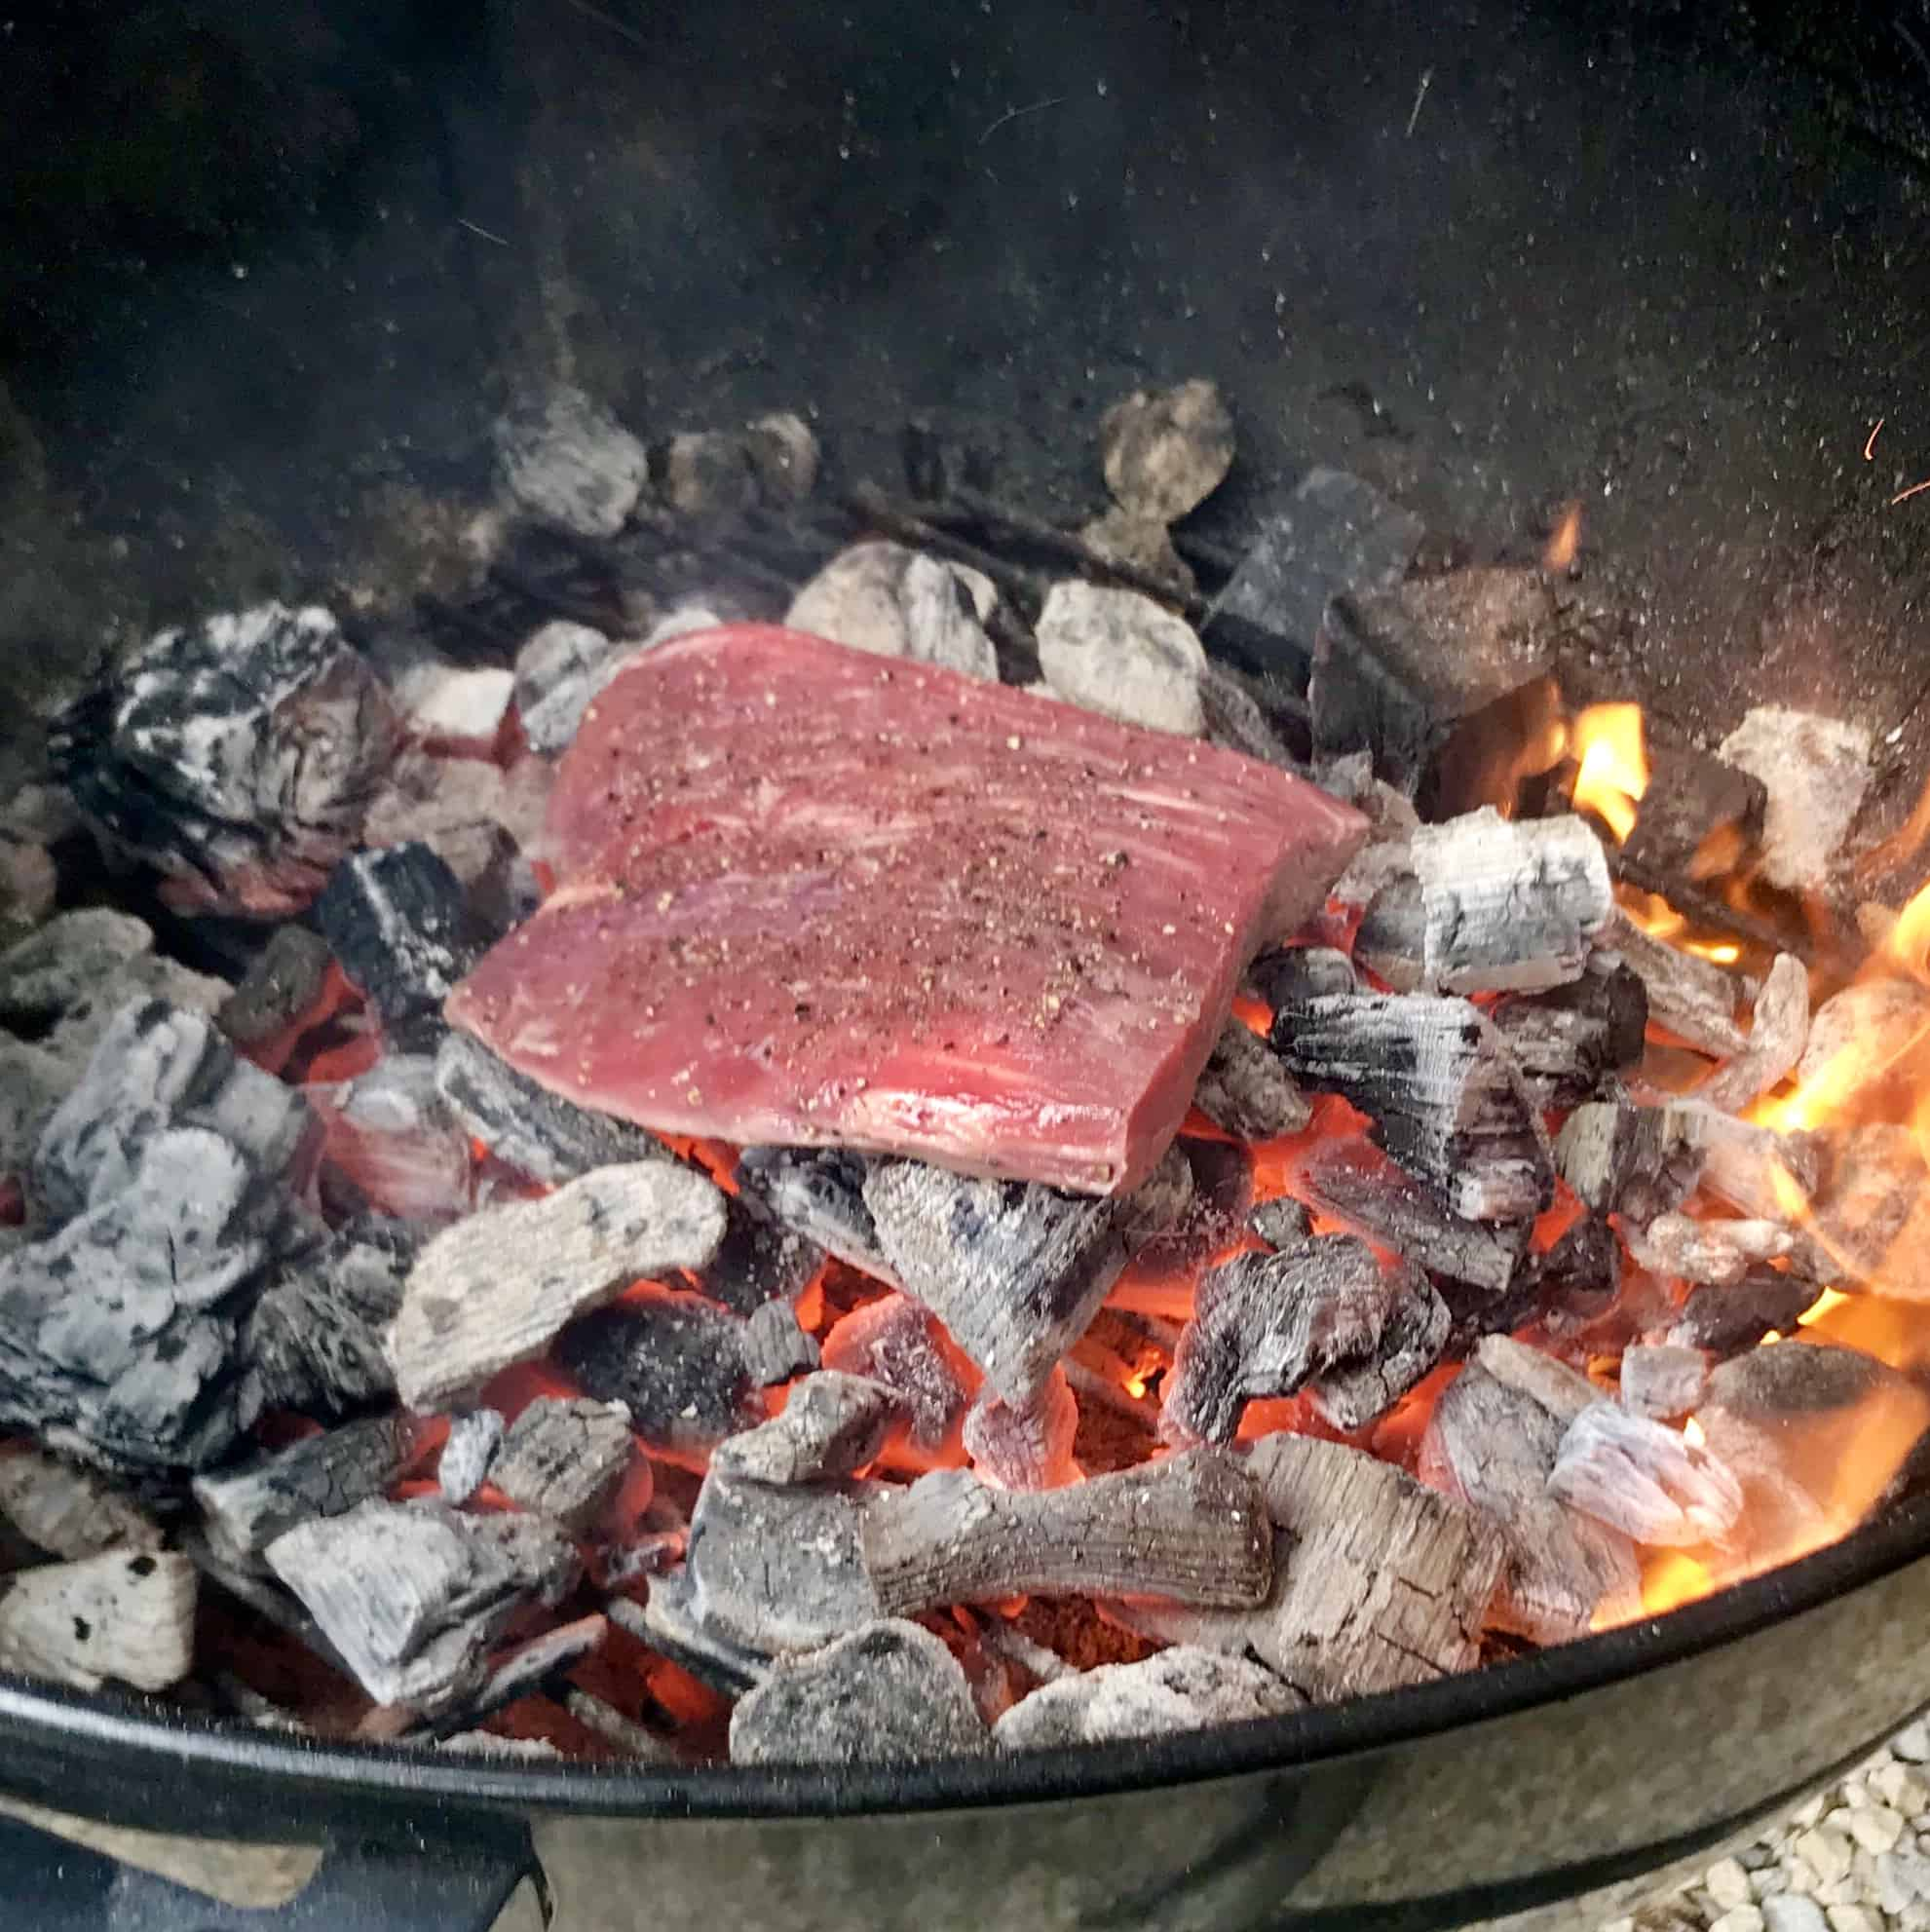 Raw steak being cooked directly on hot coals close up view